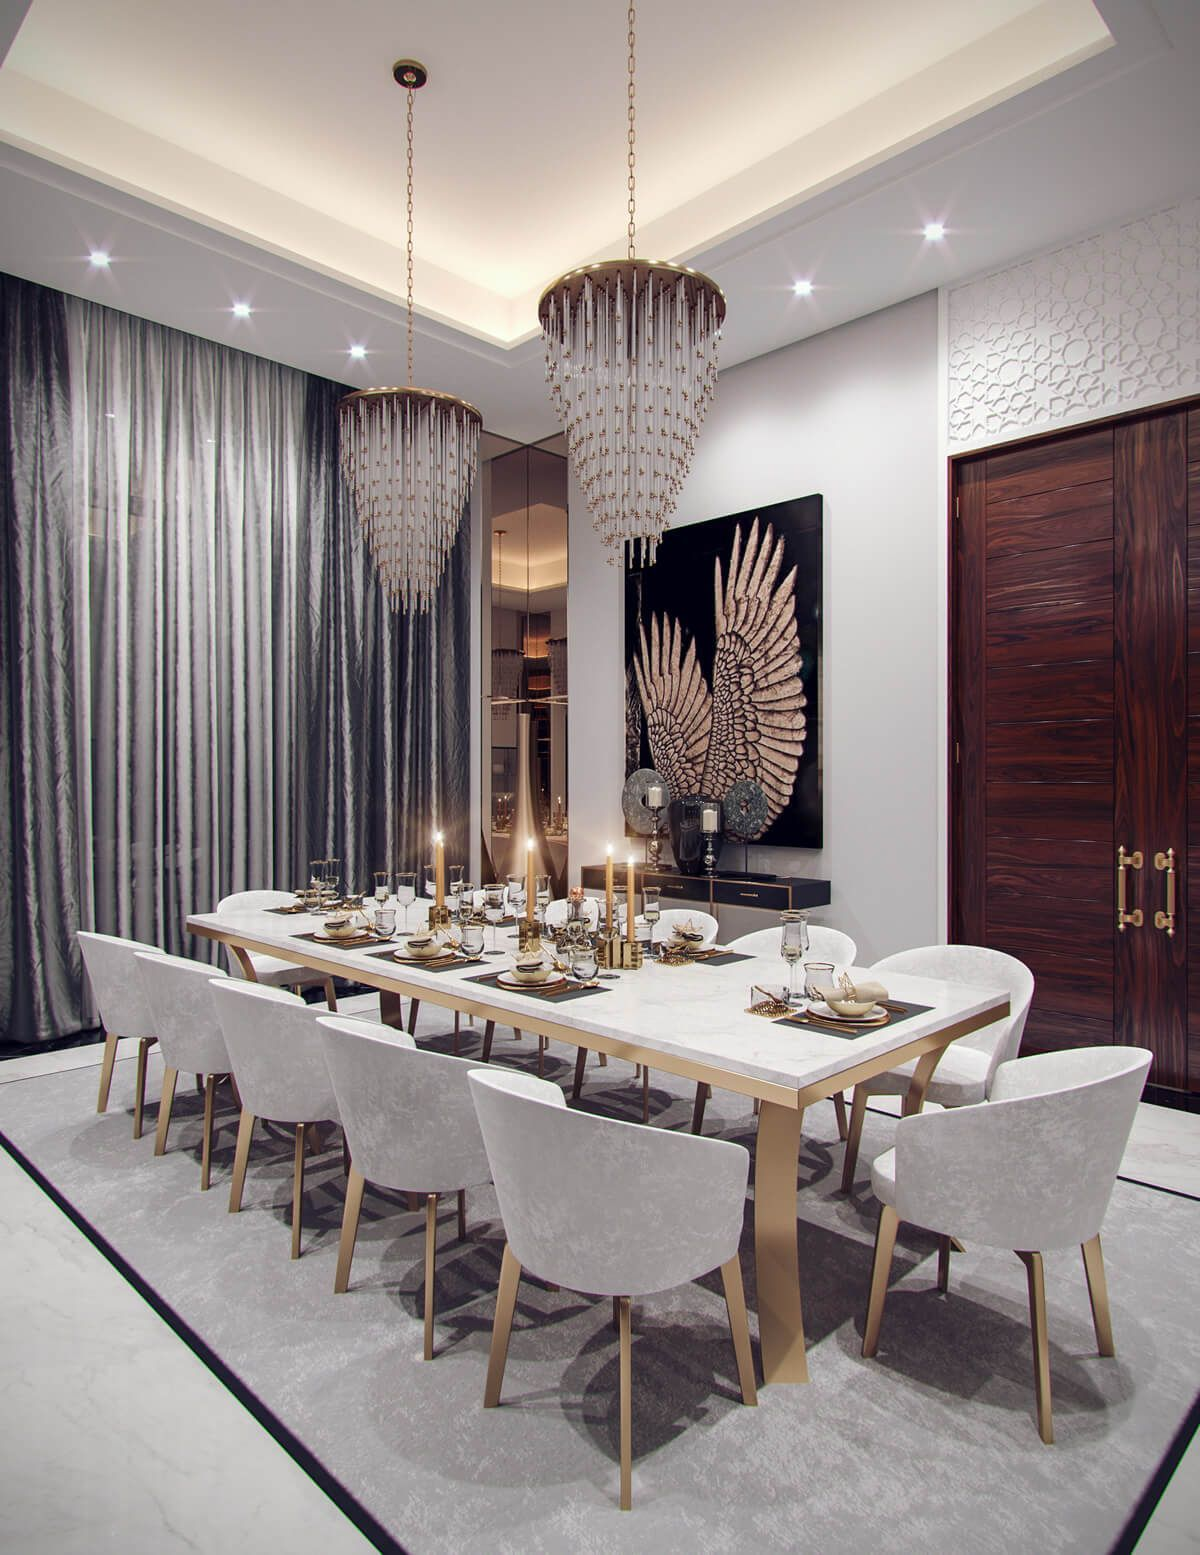 Home Decor Trends To Expect The Upcoming Season Interior Design Dining Room Luxury Dining Room Dining Room Design